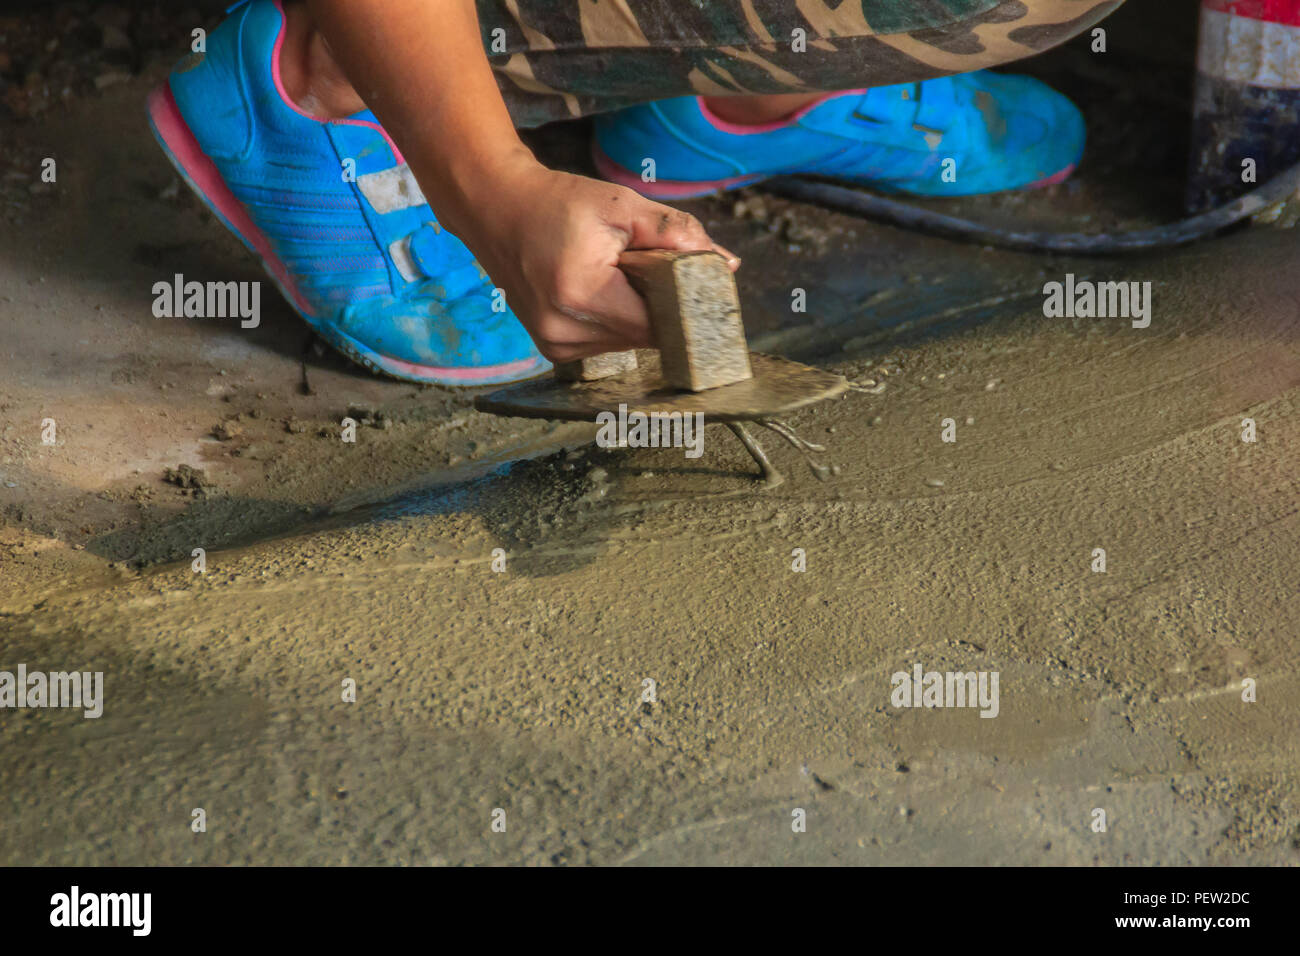 Mason worker use trowel to smooth or leveling liquid concrete of flooring work in step of the building improvement. Stock Photo